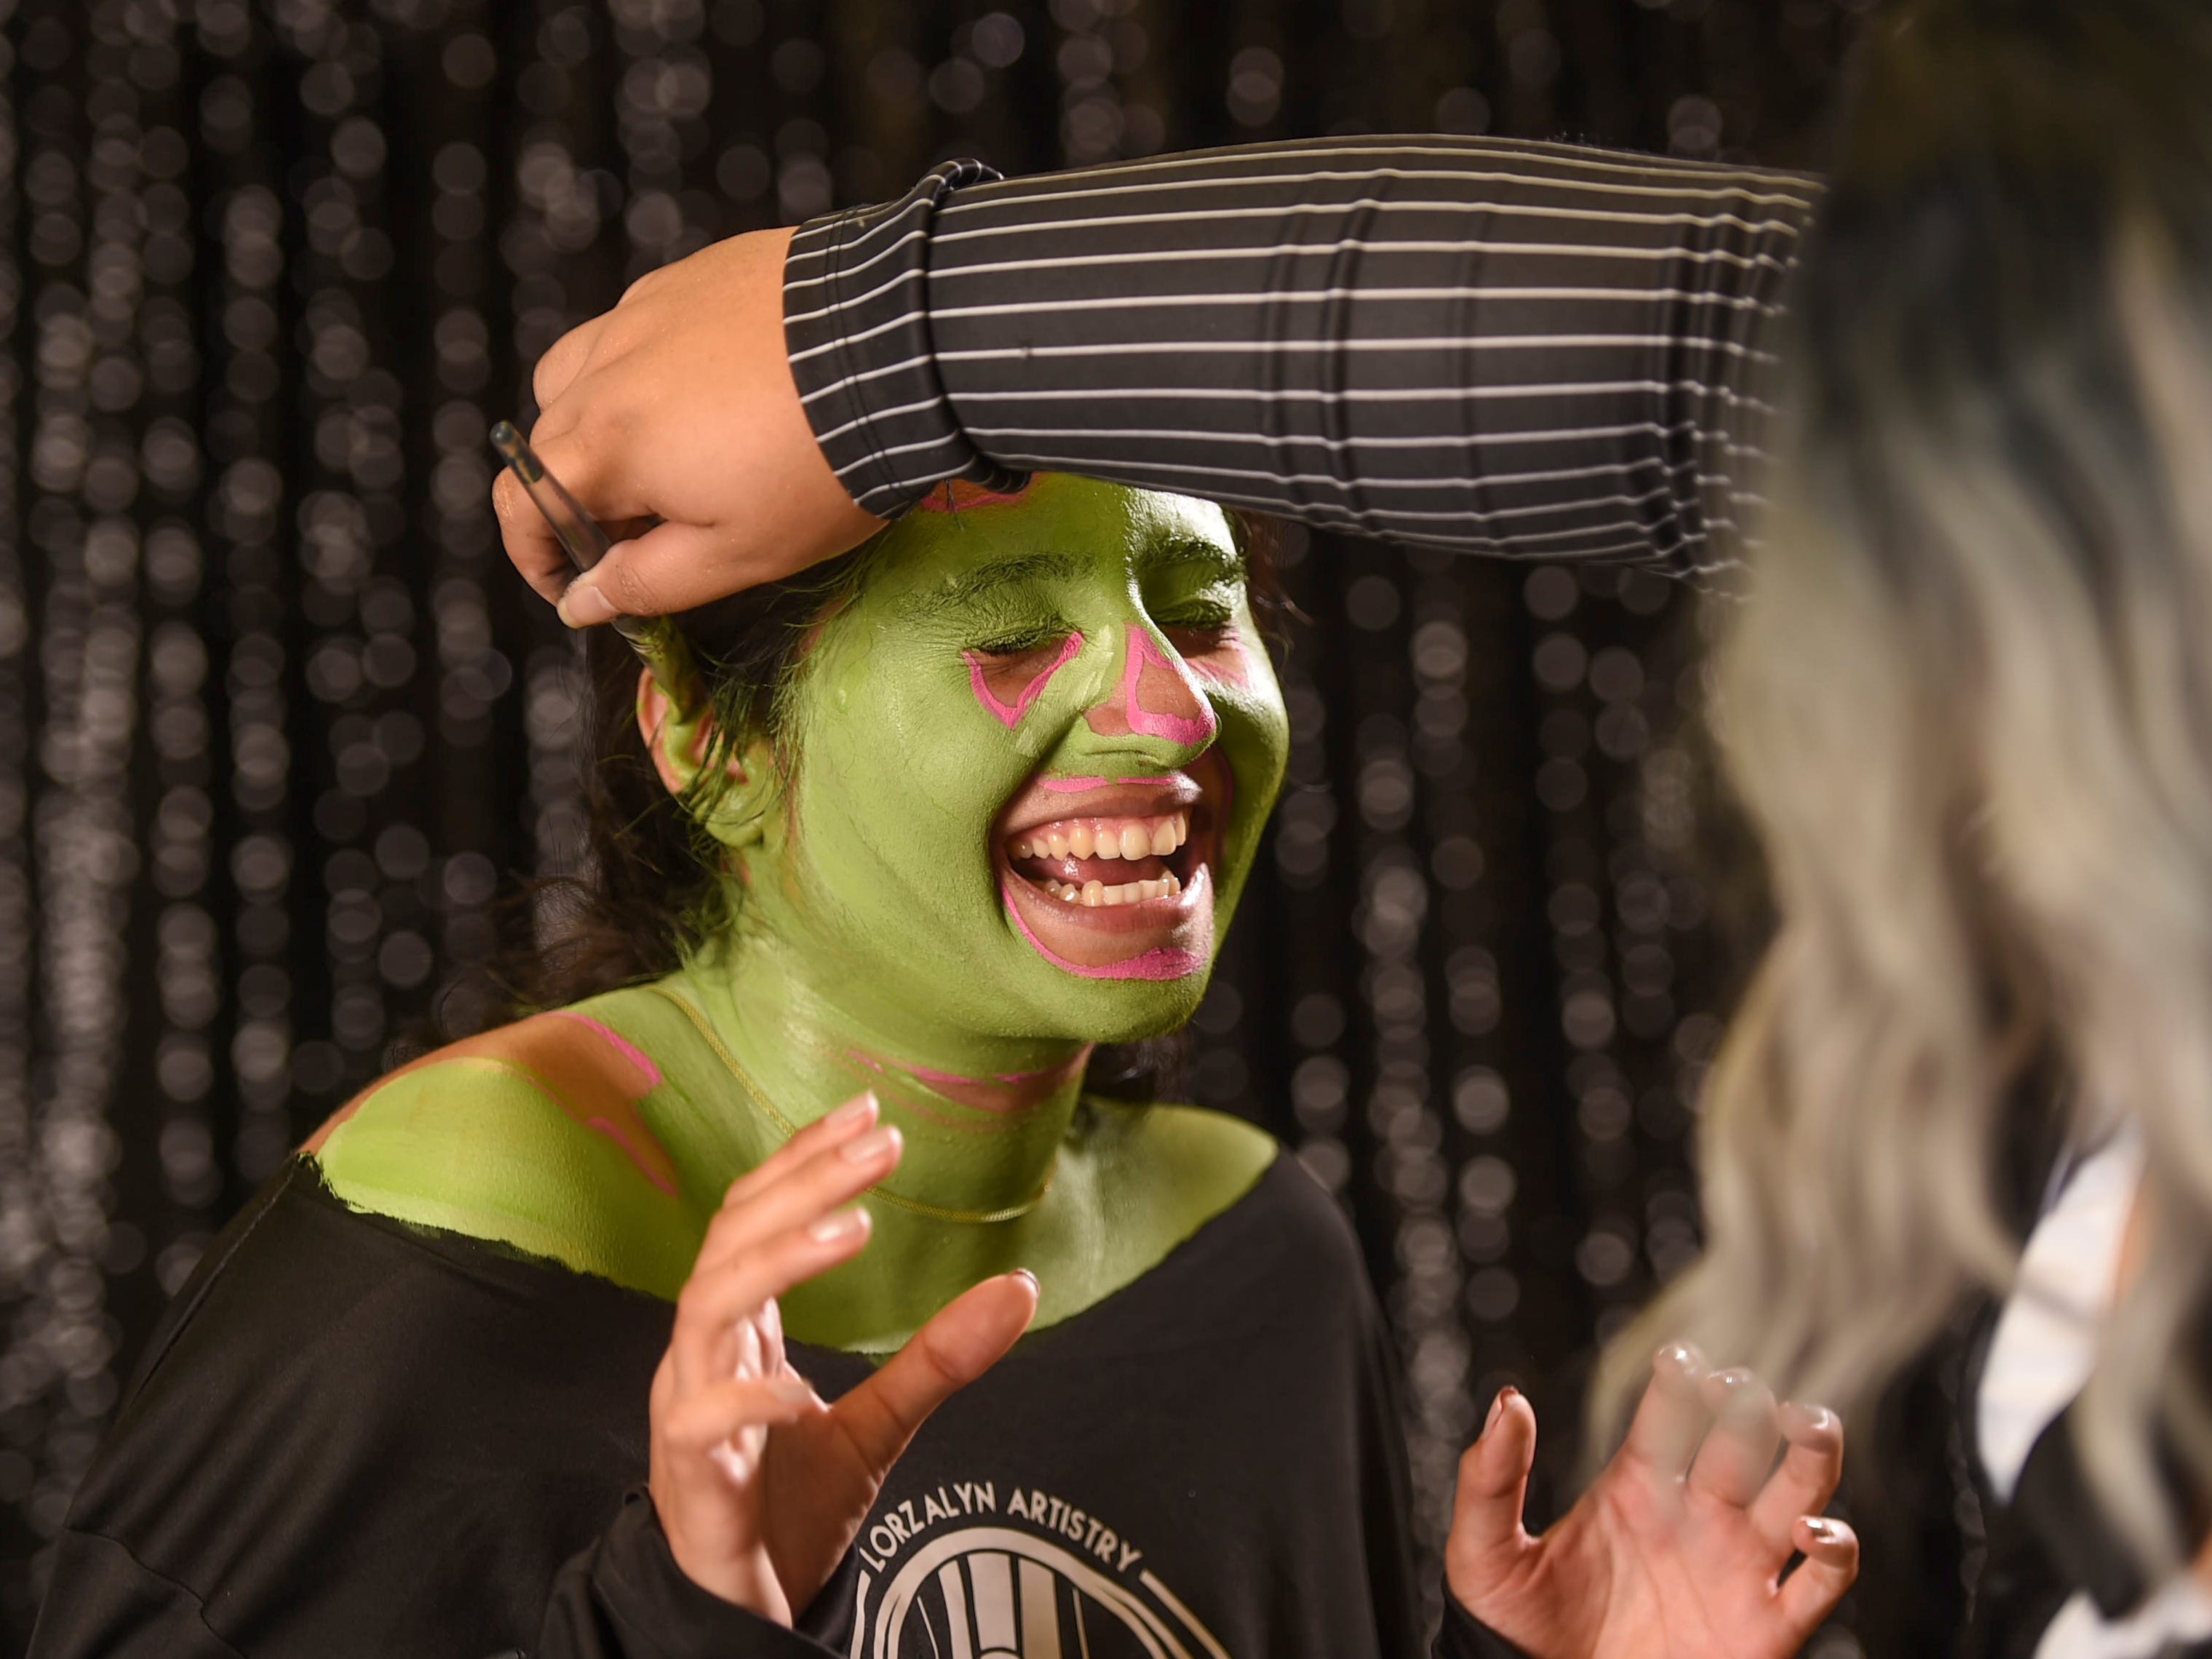 Get green water-based face paint all around the ears.